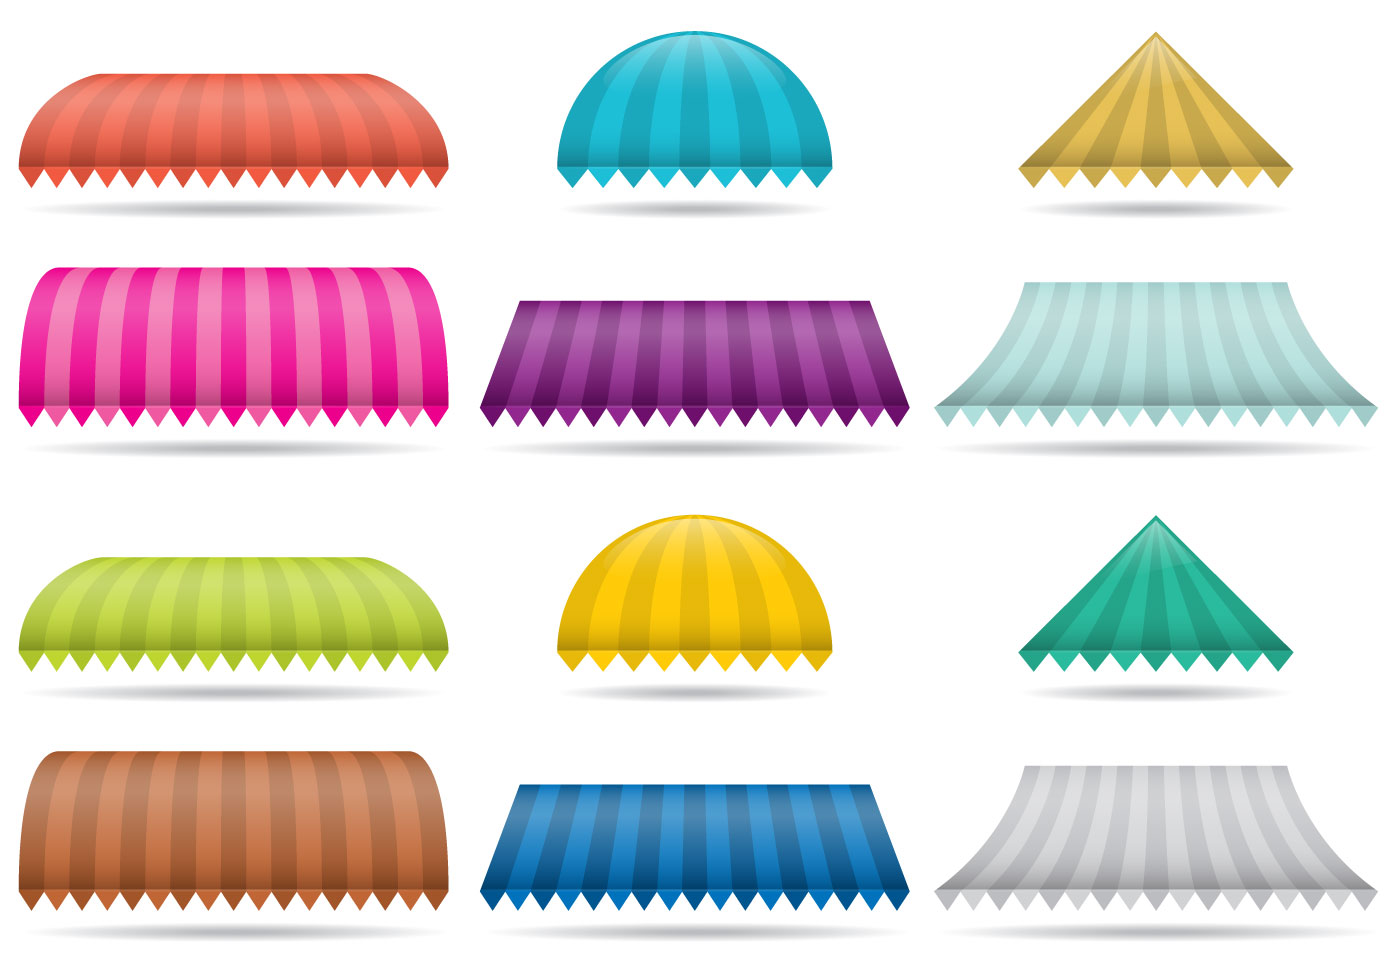 Striped Awnings Download Free Vector Art Stock Graphics